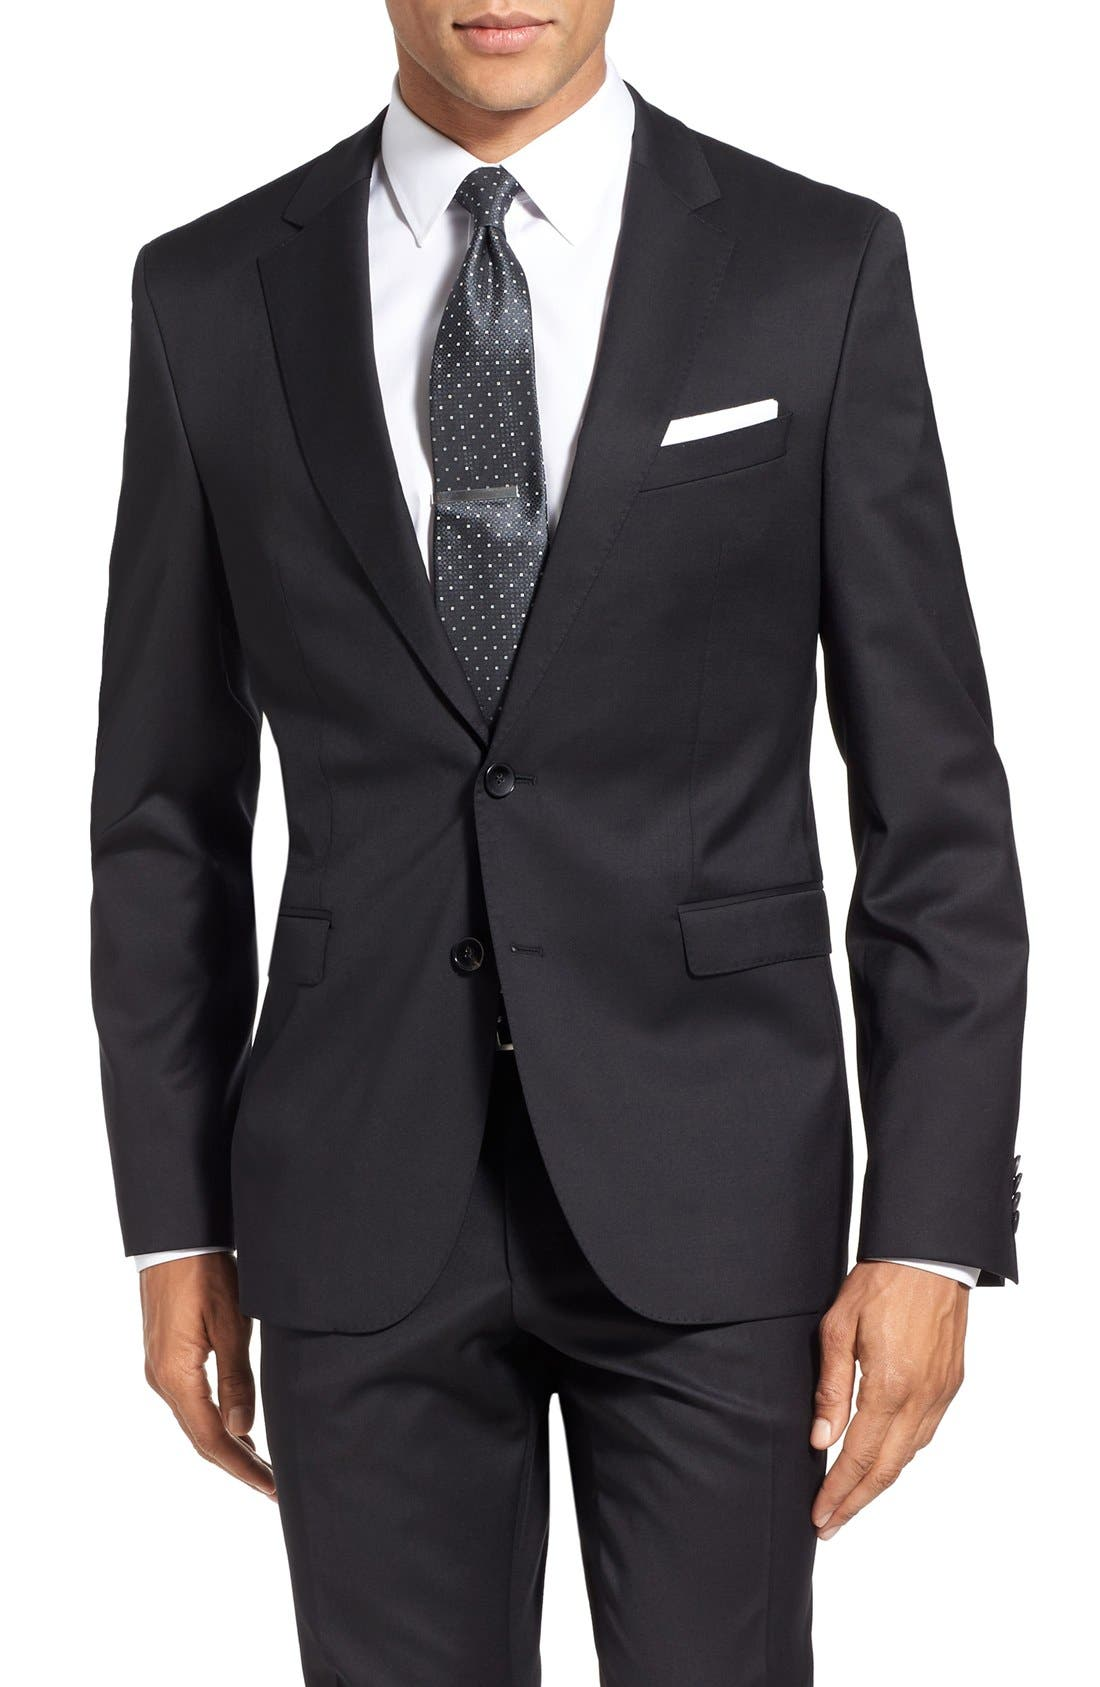 Ryan/Win Extra Trim Fit Solid Wool Suit,                             Alternate thumbnail 5, color,                             Black